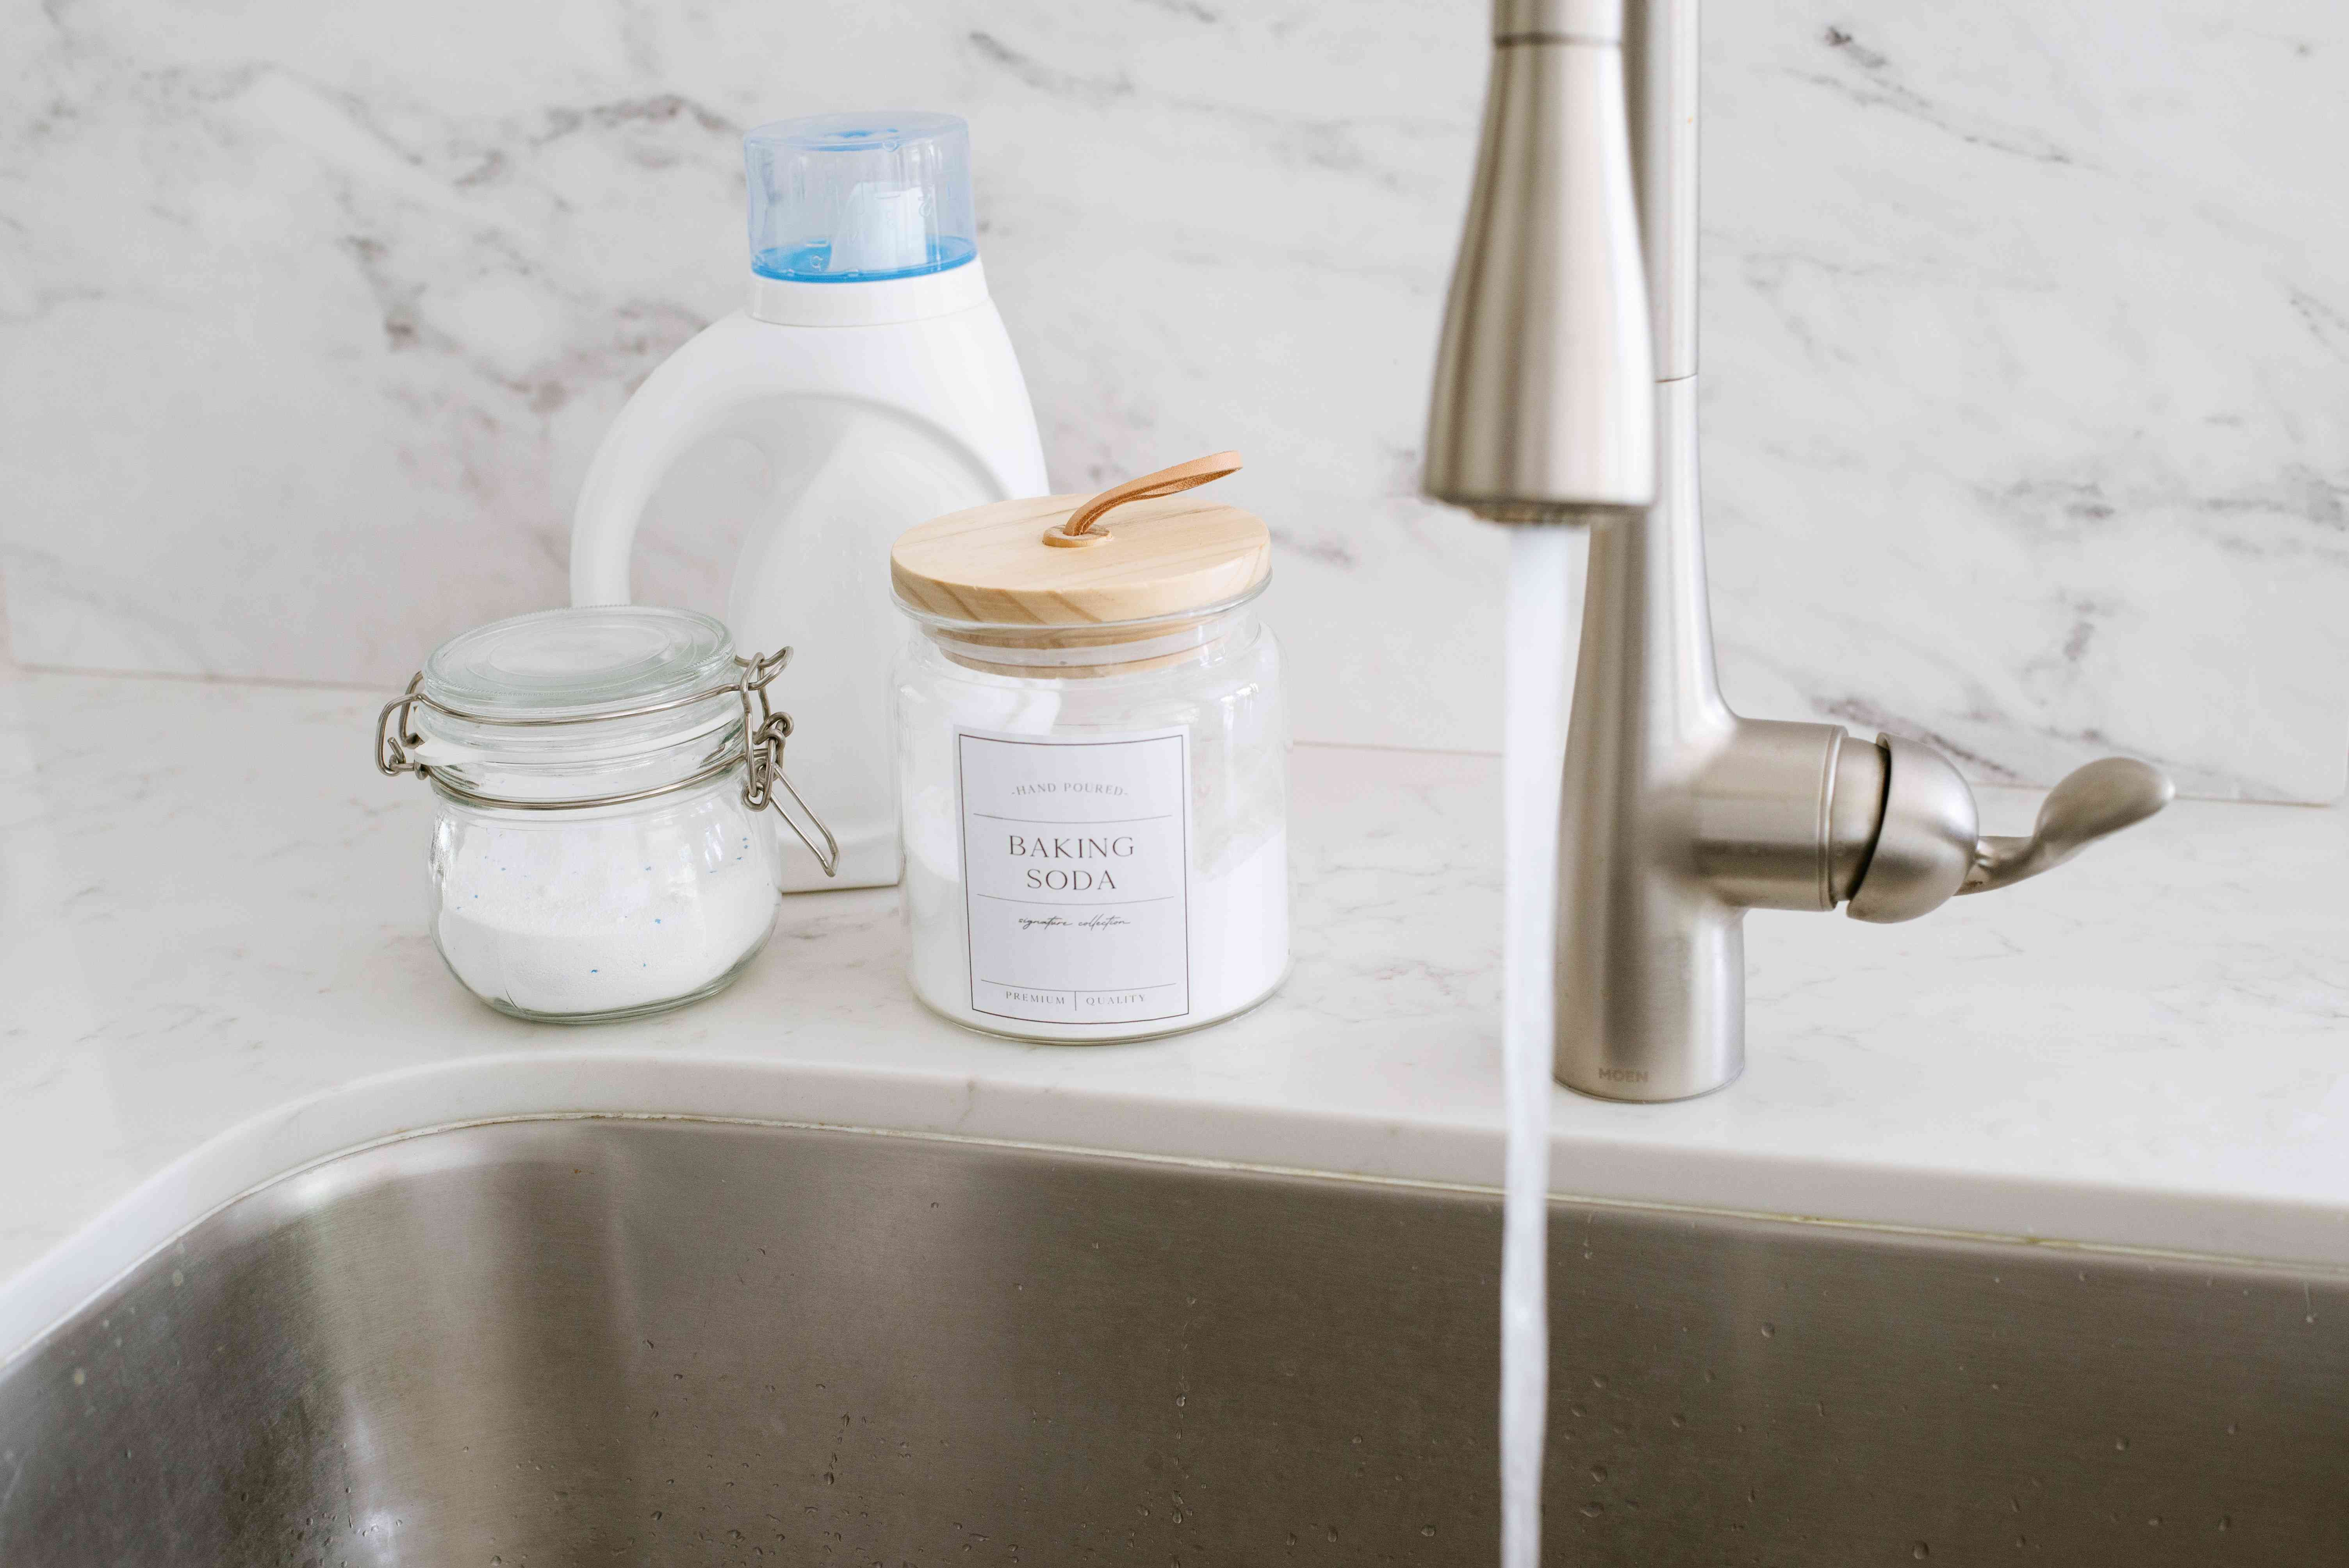 Baking soda and oxygen-based black in glass containers next to sink and laundry detergent bottle